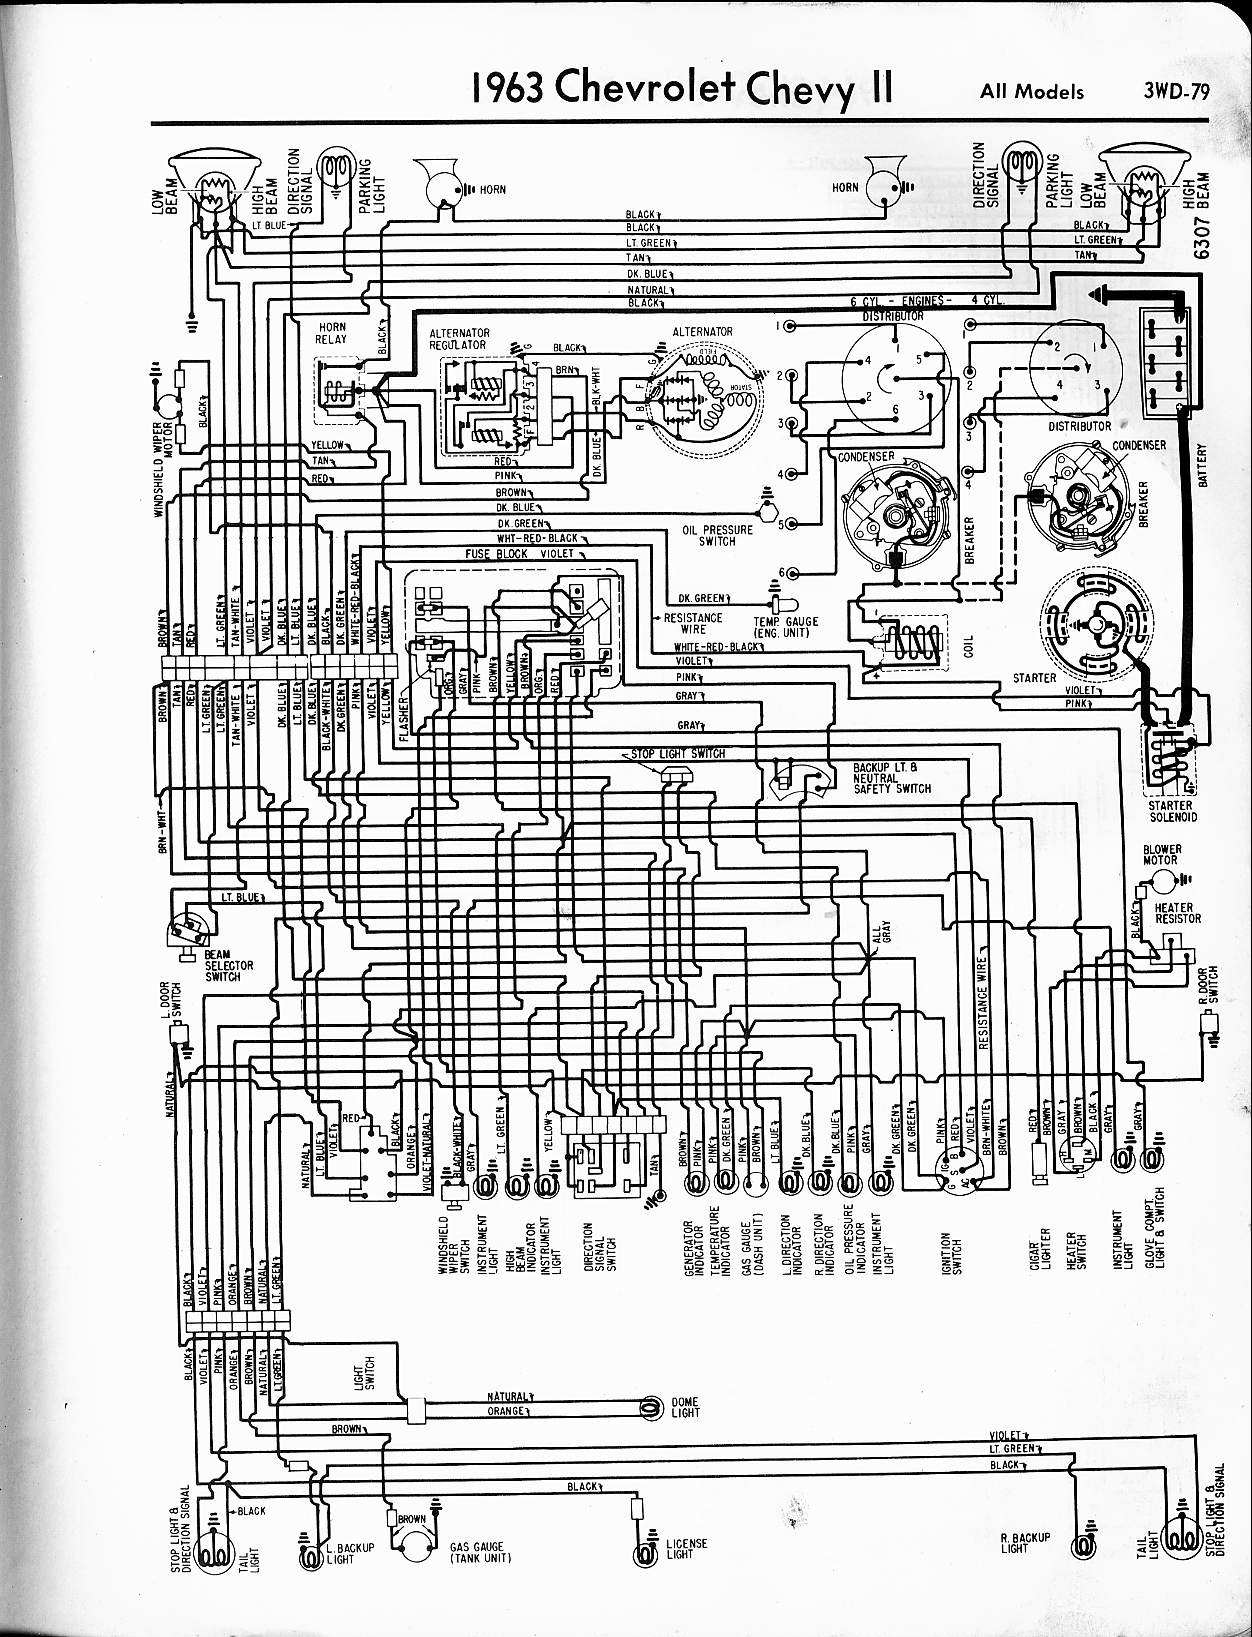 MWireChev63_3WD 079 57 65 chevy wiring diagrams 1963 chevrolet c10 wiring diagram at soozxer.org